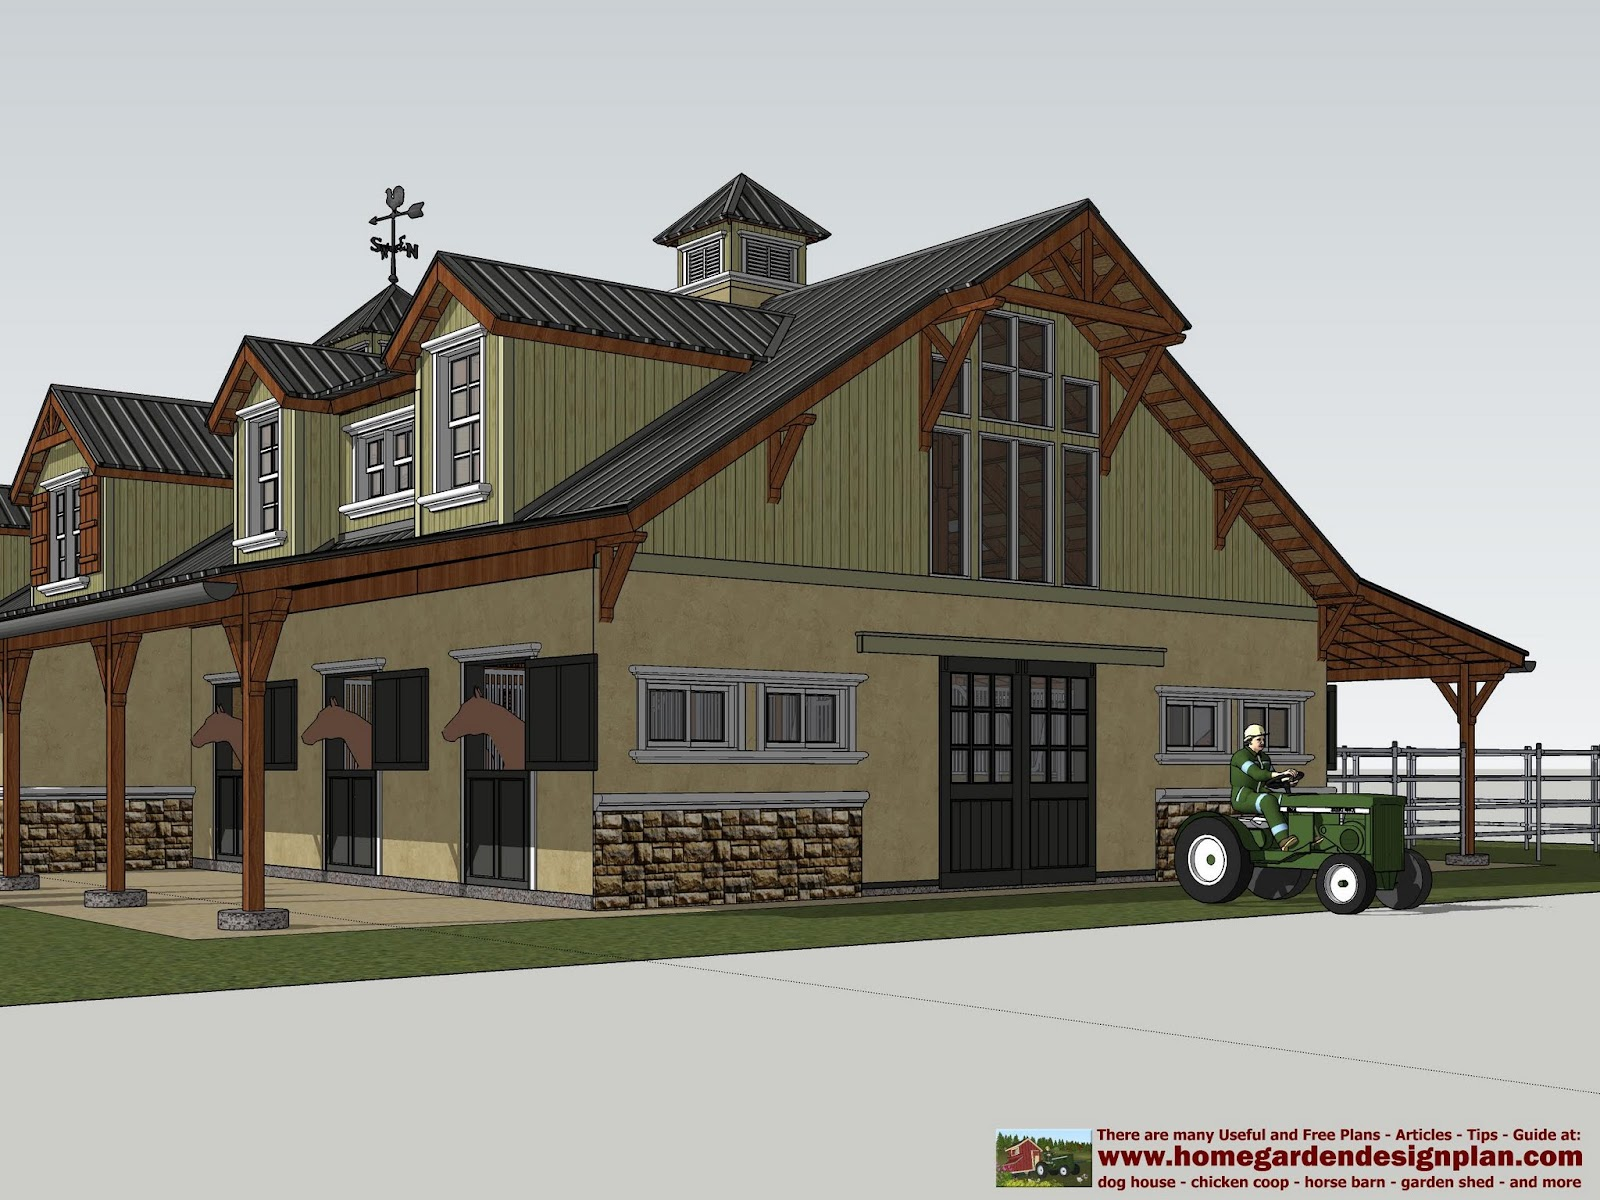 Horse barn house plans 28 images house barn plans for Horse barn with apartment plans